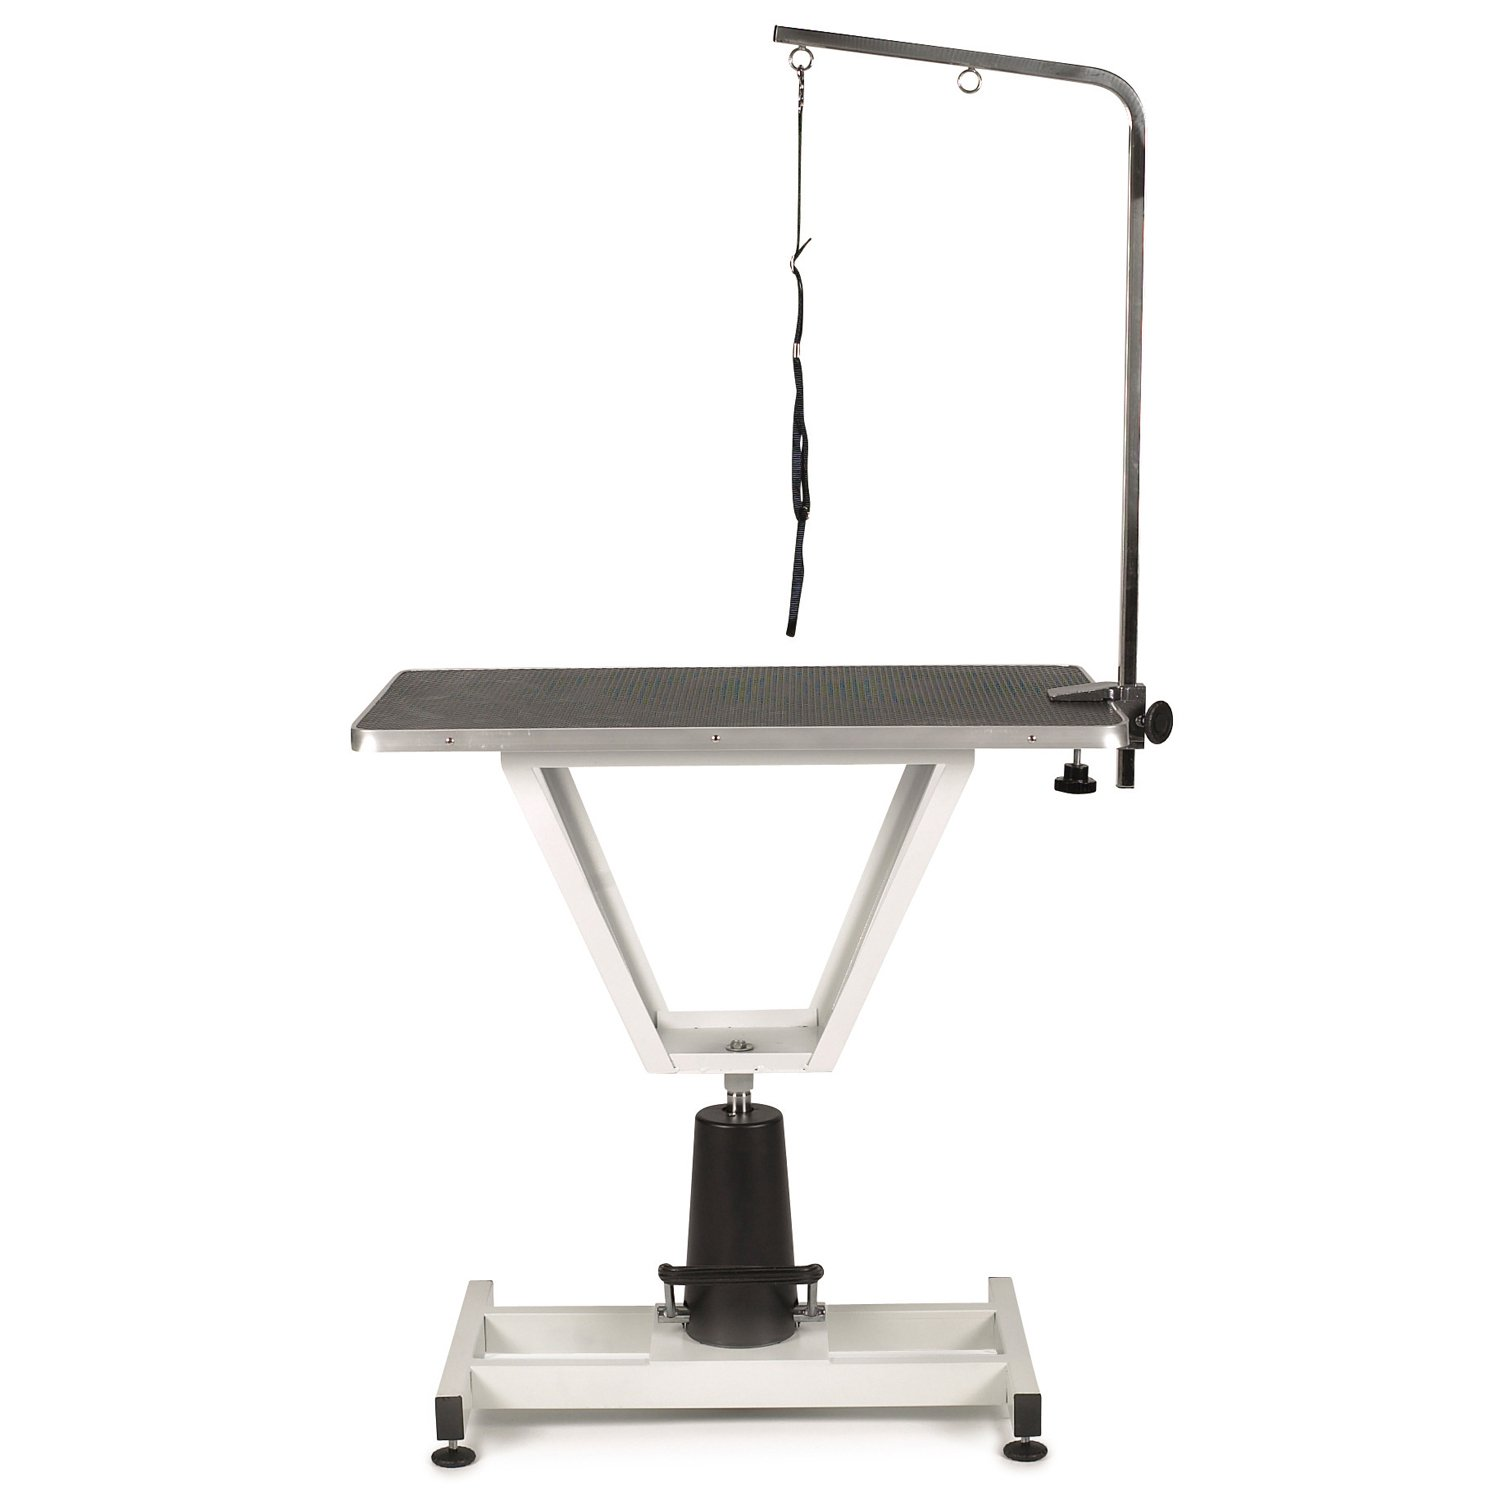 Master Equipment, Value Lift Hydraulic Table